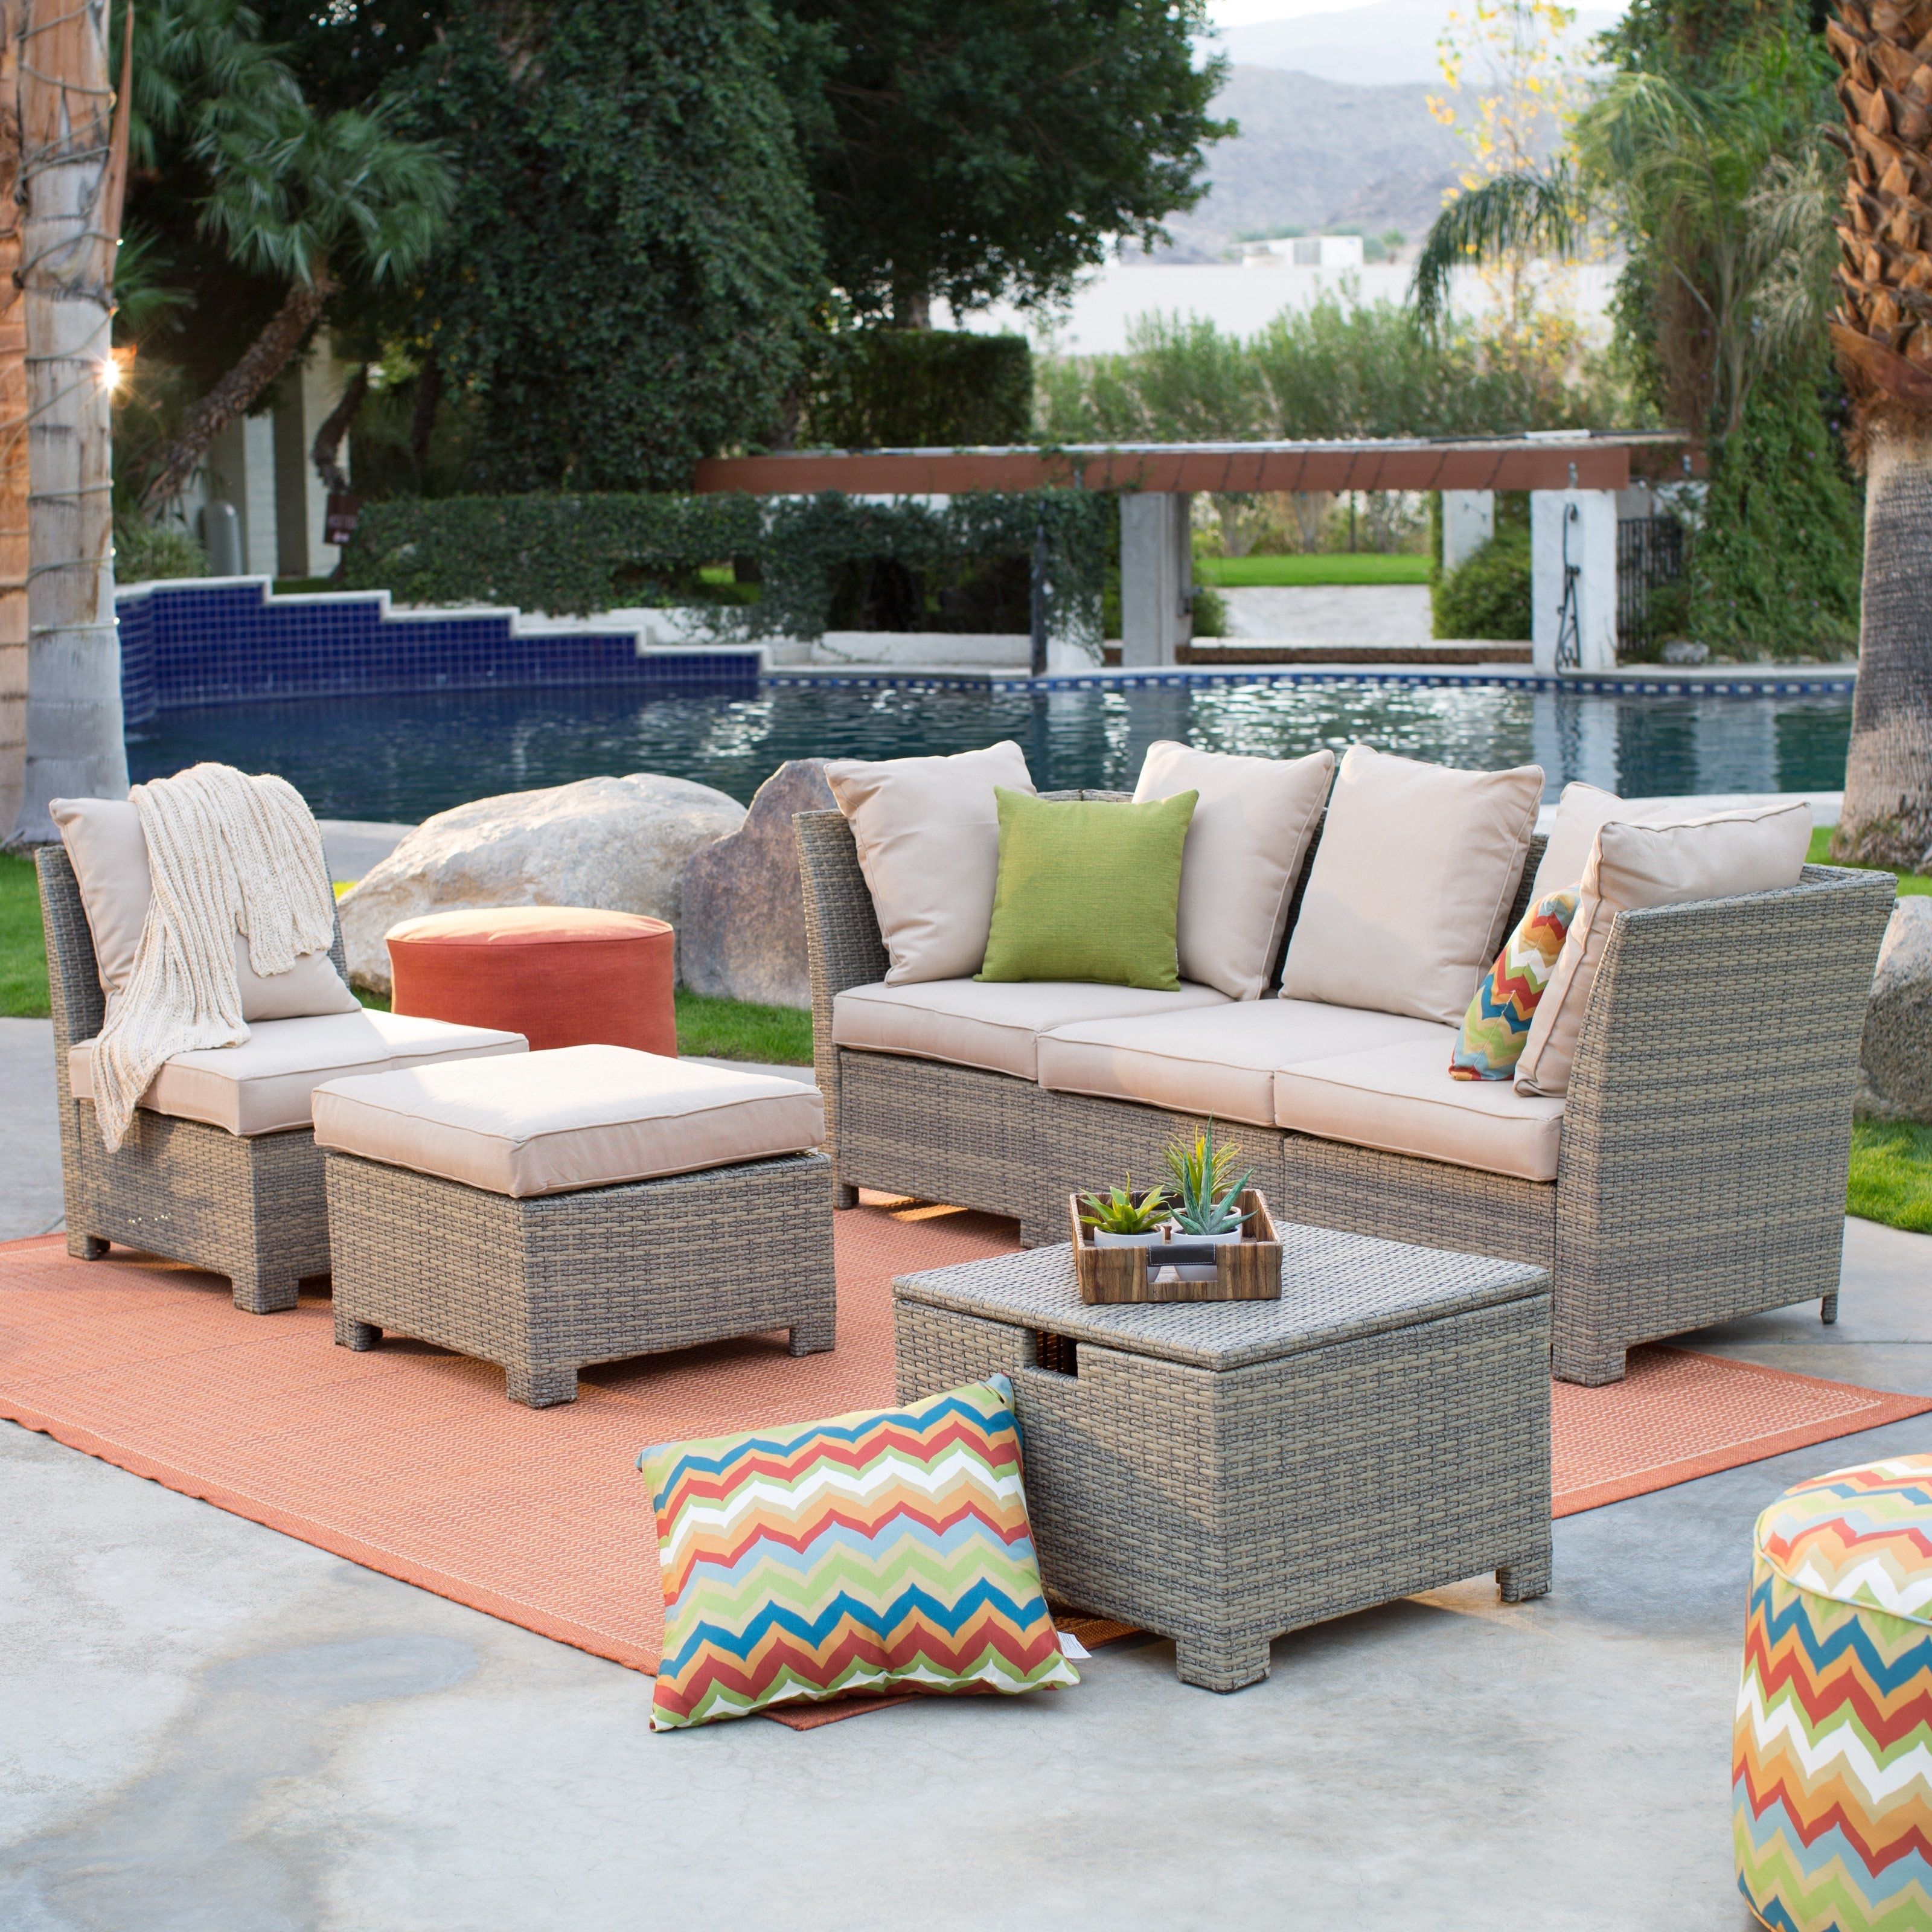 Latest Resin Conversation Patio Sets With Fabulous Resin Wicker Patio Chairs Resin Wicker Patio Sets Amp (View 7 of 15)